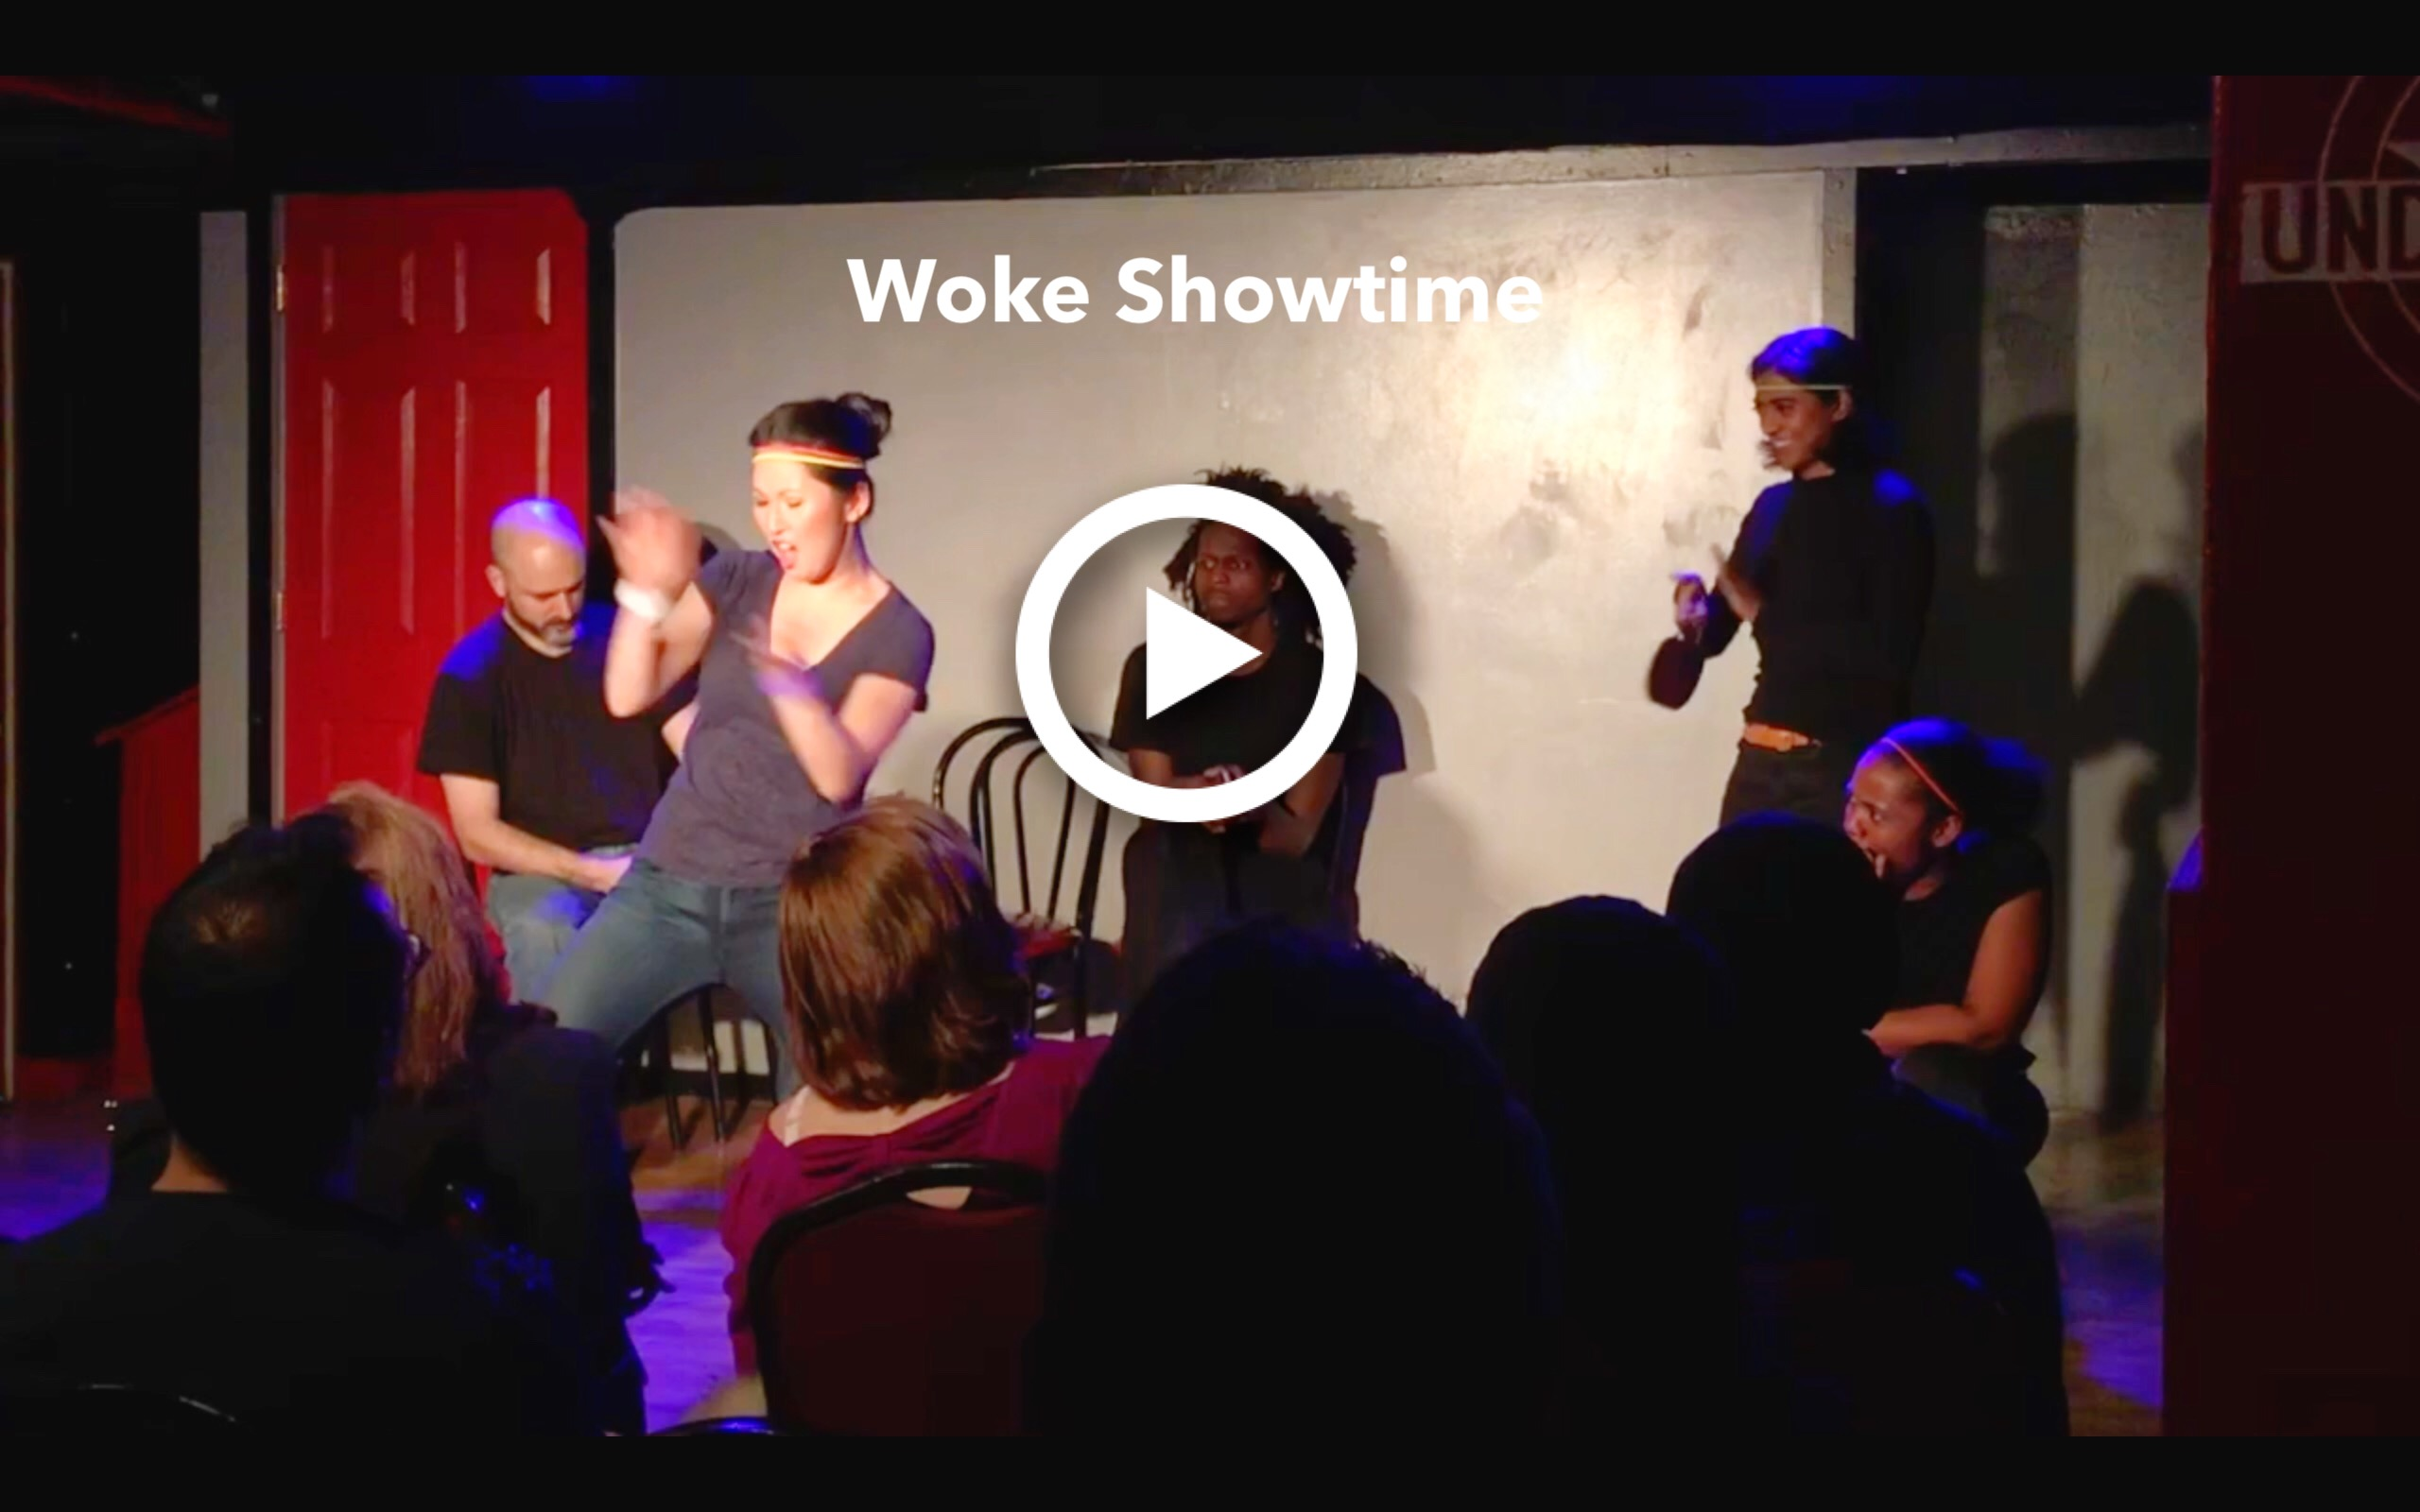 Woke Showtime (Video): https://drive.google.com/file/d/1EtkaGHXvJVPV6HGl211H-2XnOtnPKbrf/view?usp=sharing